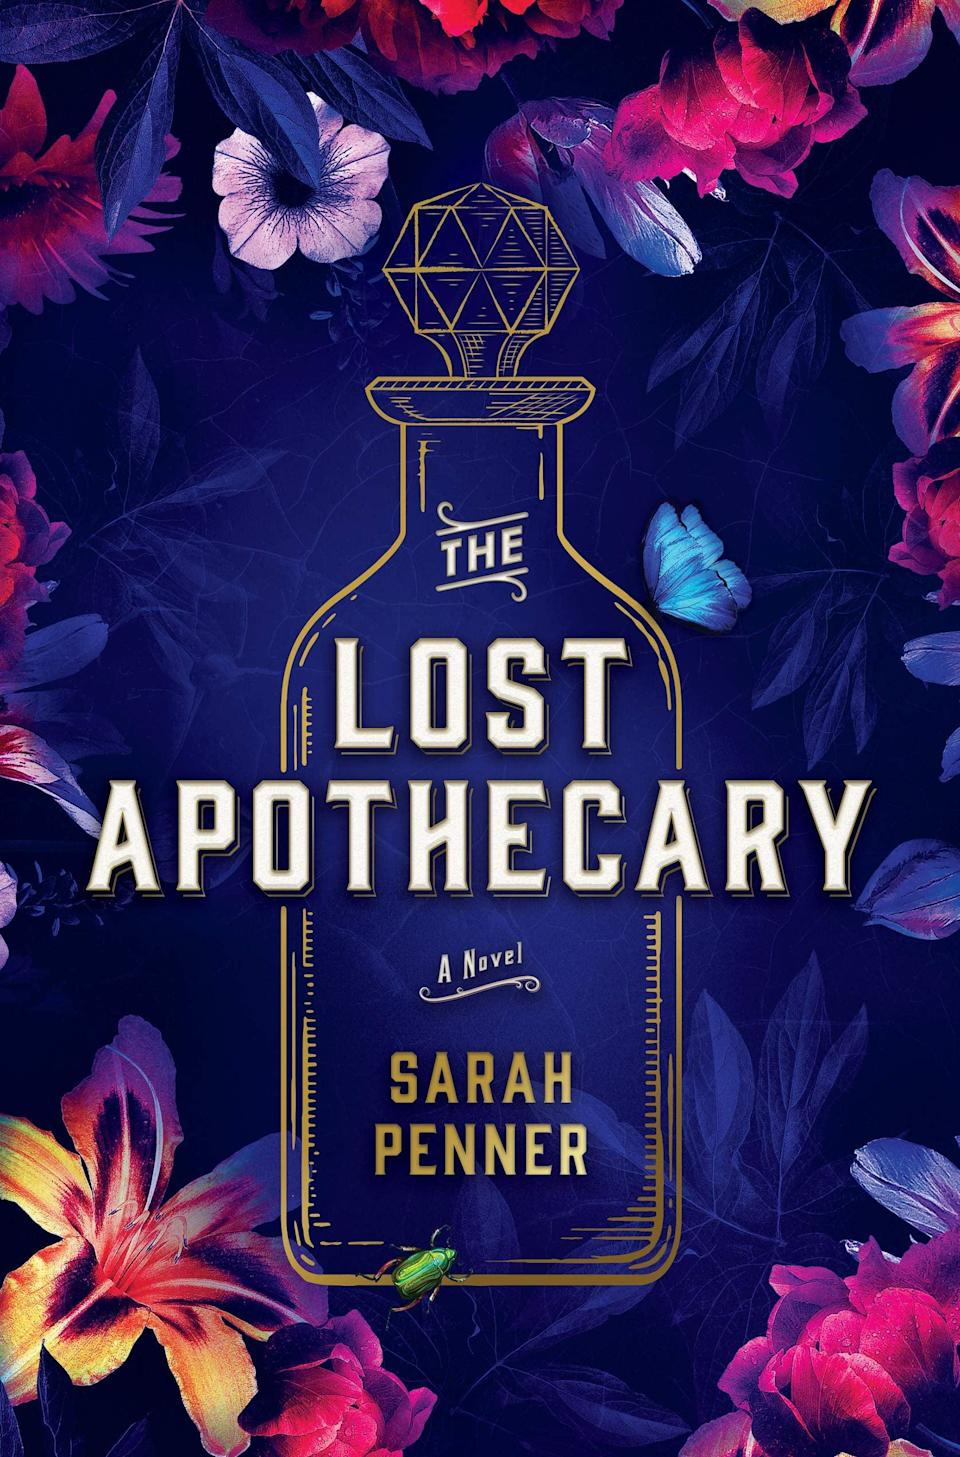 <p>Told across two timelines, <span><strong>The Lost Apothecary</strong></span> by Sarah Penner is a story about women who will do whatever it takes to survive. In the 1800s, an apothecary in London becomes a place where women who need to get rid of troublemaking men know they can go for help. Meanwhile, in the modern day, a historian named Caroline Parcewell is about to make a discovery about the apothecary murders that will turn her life upside down.</p> <p><em>Out March 2</em></p>